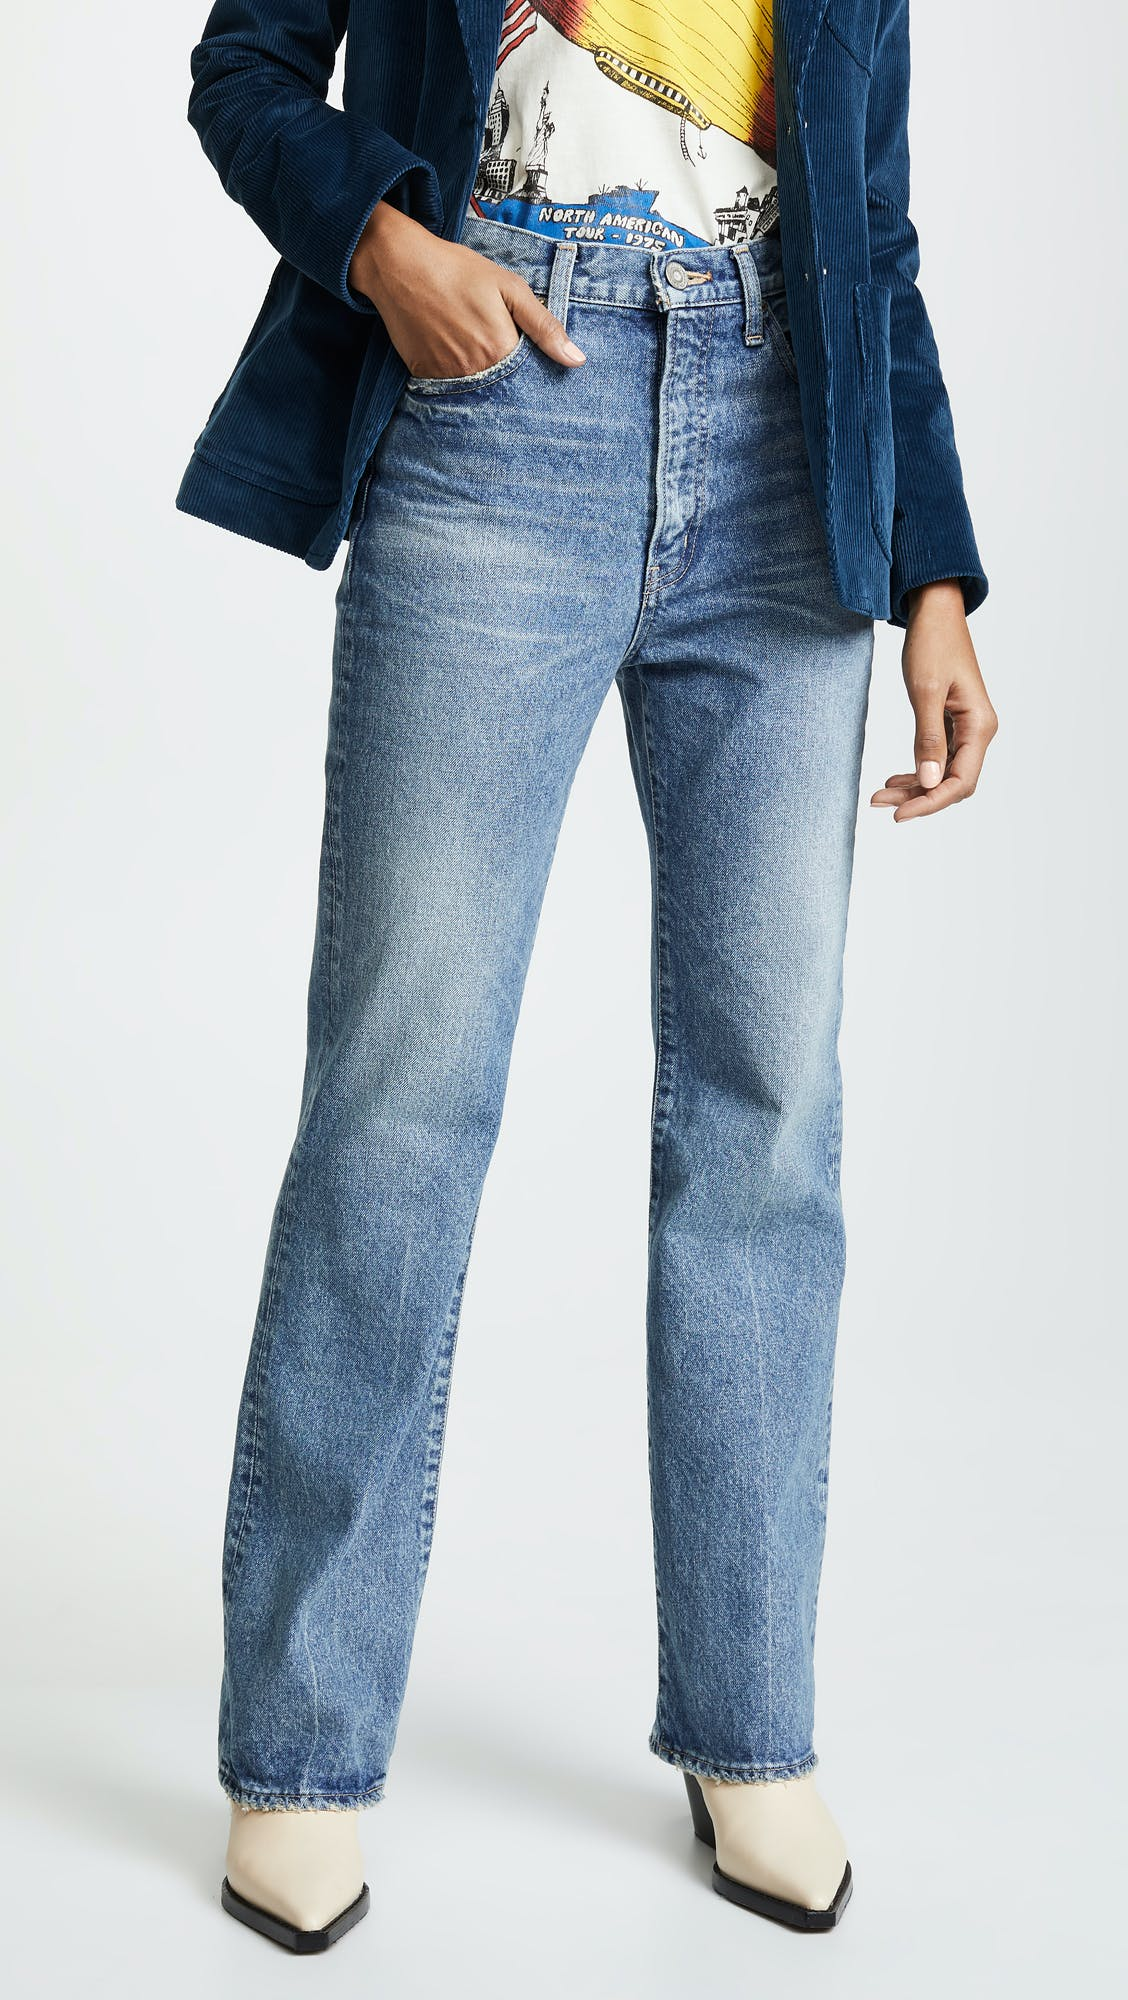 moussy, moussy vintage, moussy jeans, straight flare, vintage jeans, japanese denim, high rise jeans, high waisted jeans